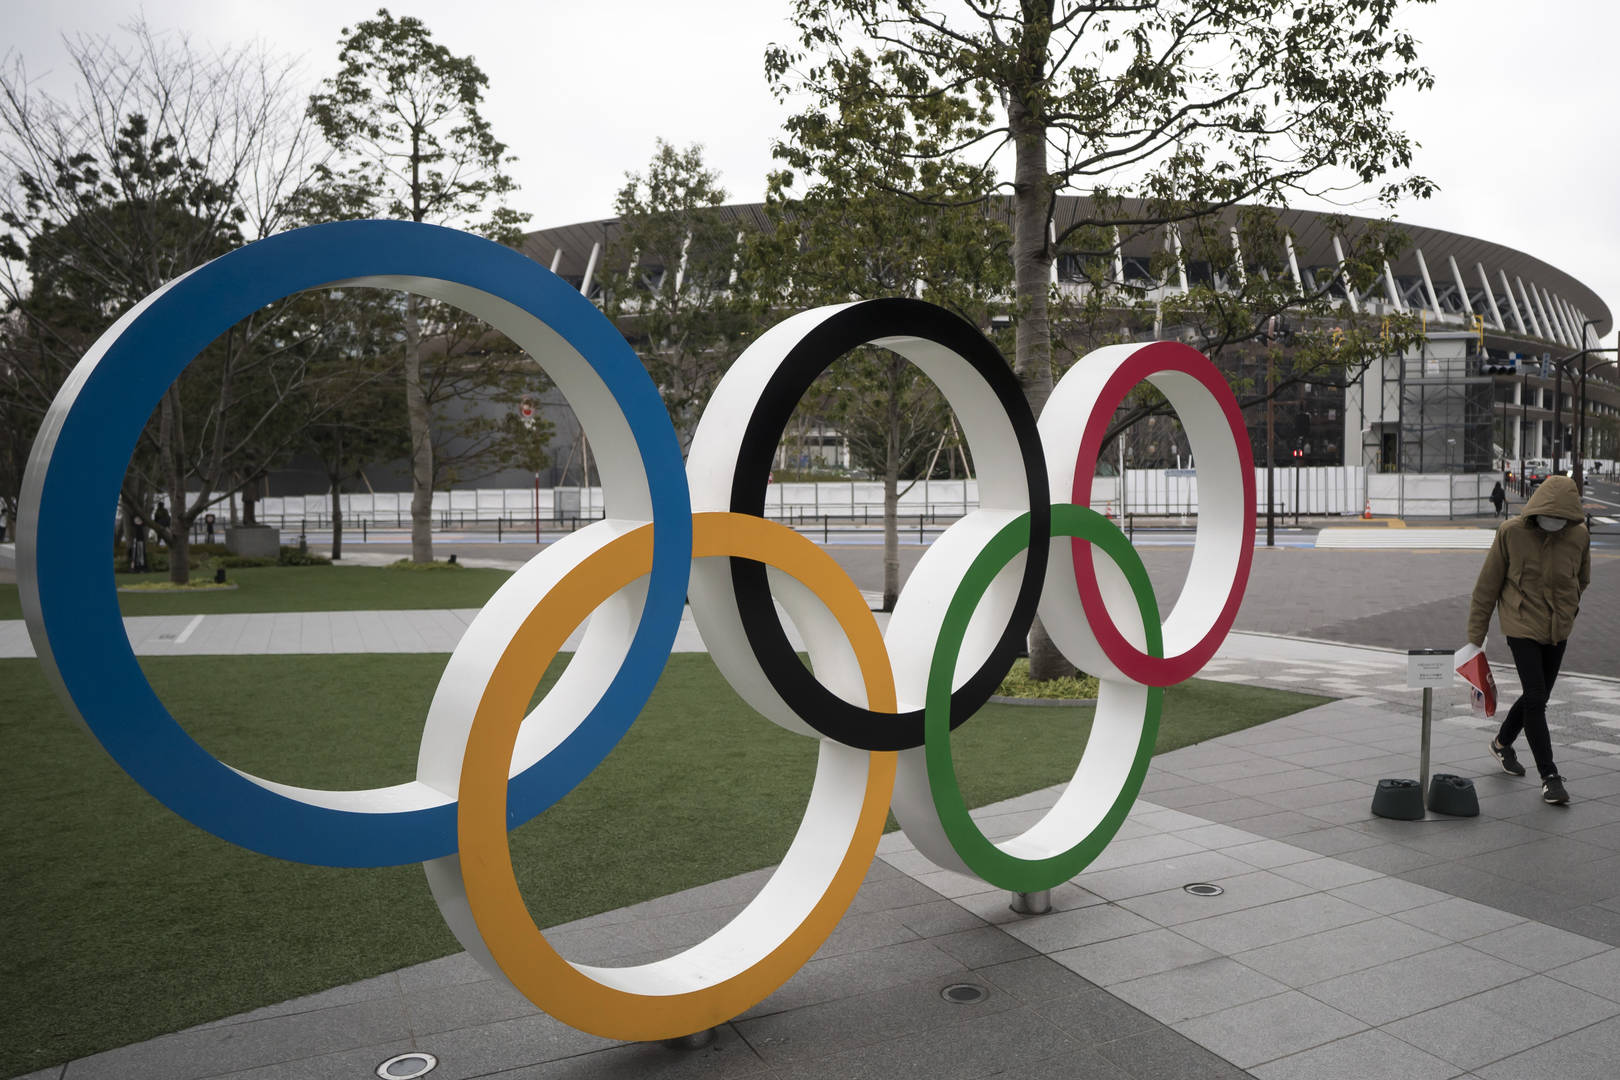 International Olympic Committee Considers Postponing 2020 Olympics: Report